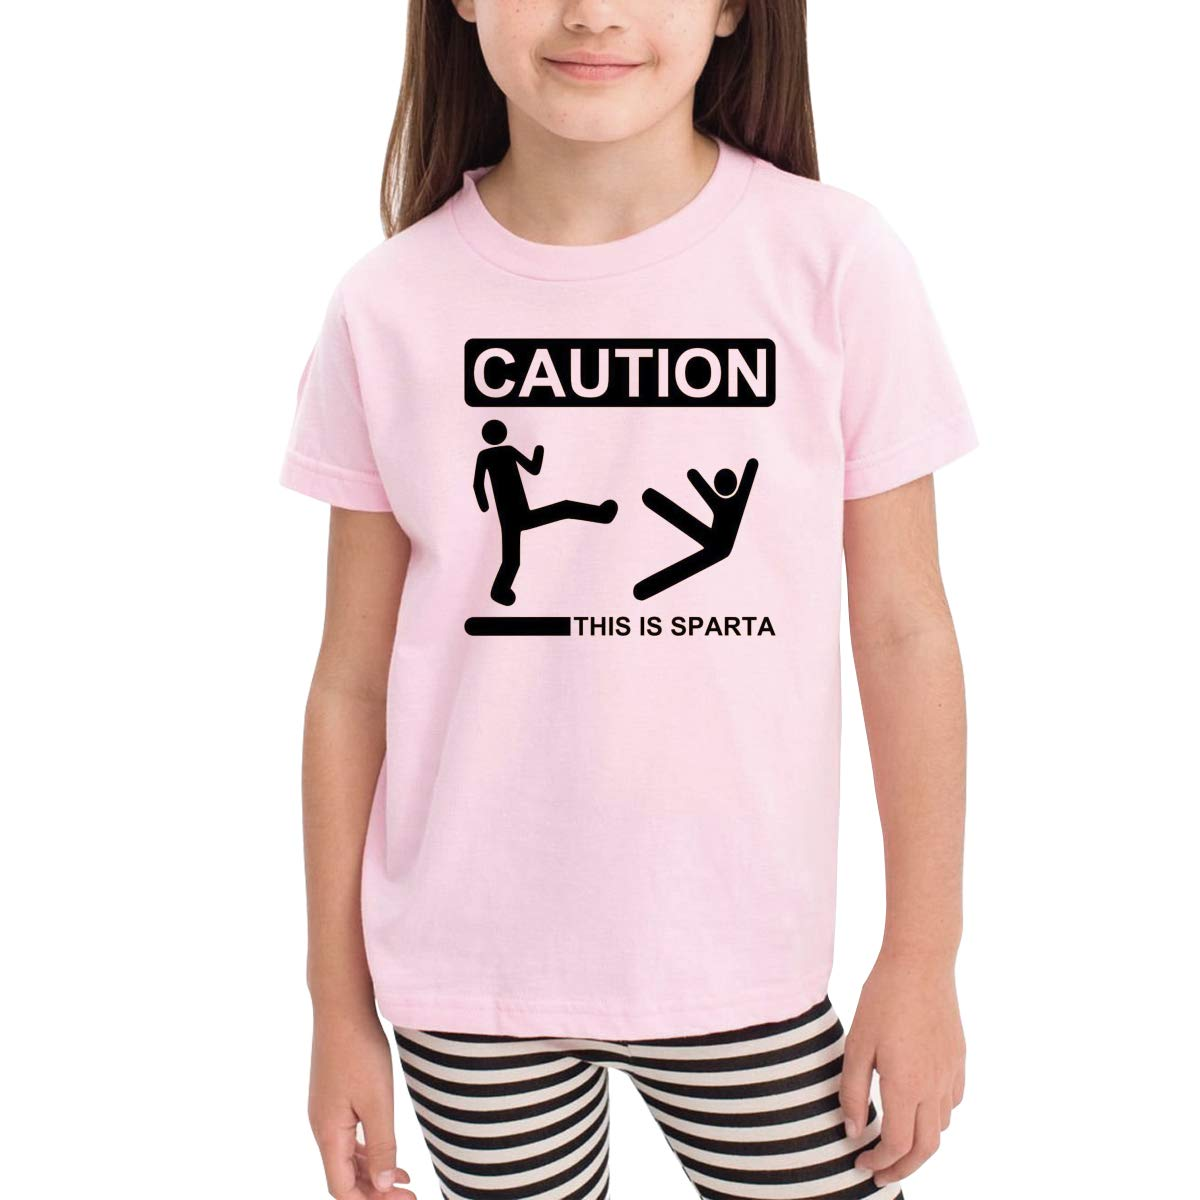 Funny Human Humor Novelty Cotton T Shirt Personality White Tee for Toddler Kids Boys Girls